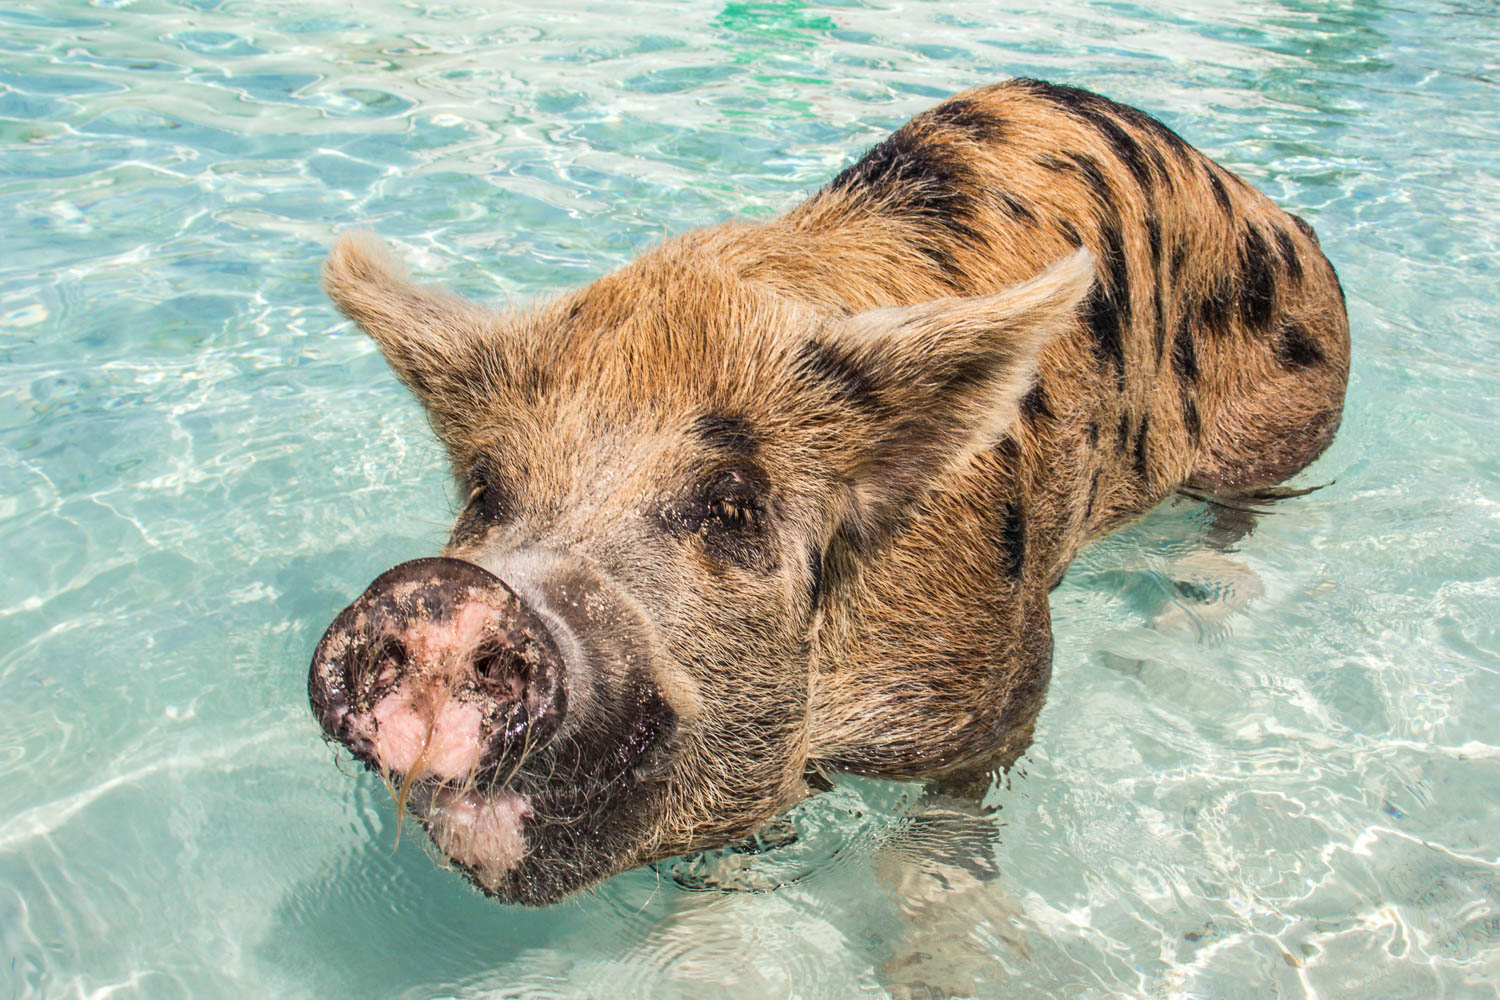 Pig Island Bahamas is home to 25 Exuma pigs. Pig Beach is famous among the Bahamas swimming pigs.